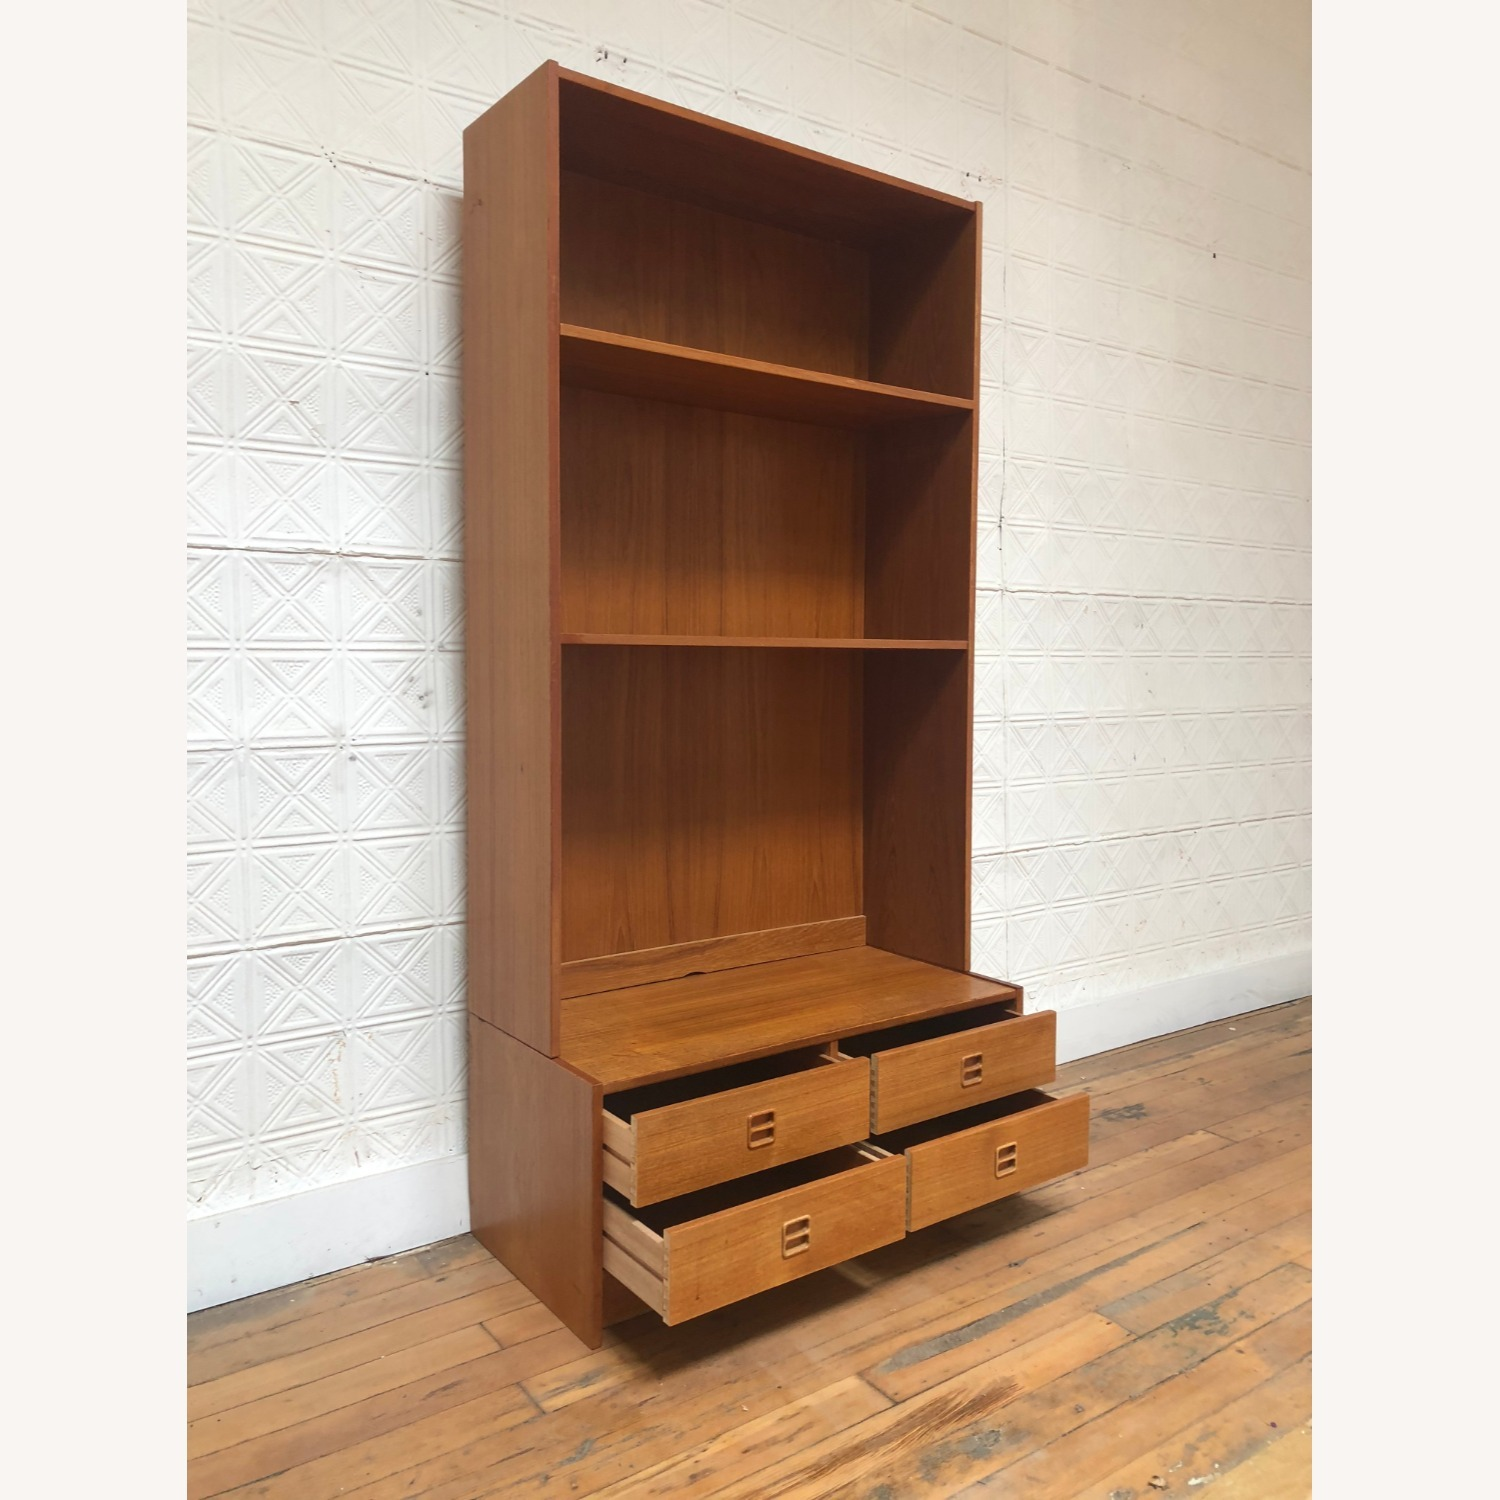 Danish Modern Shelving Unit with Four Drawers - image-1